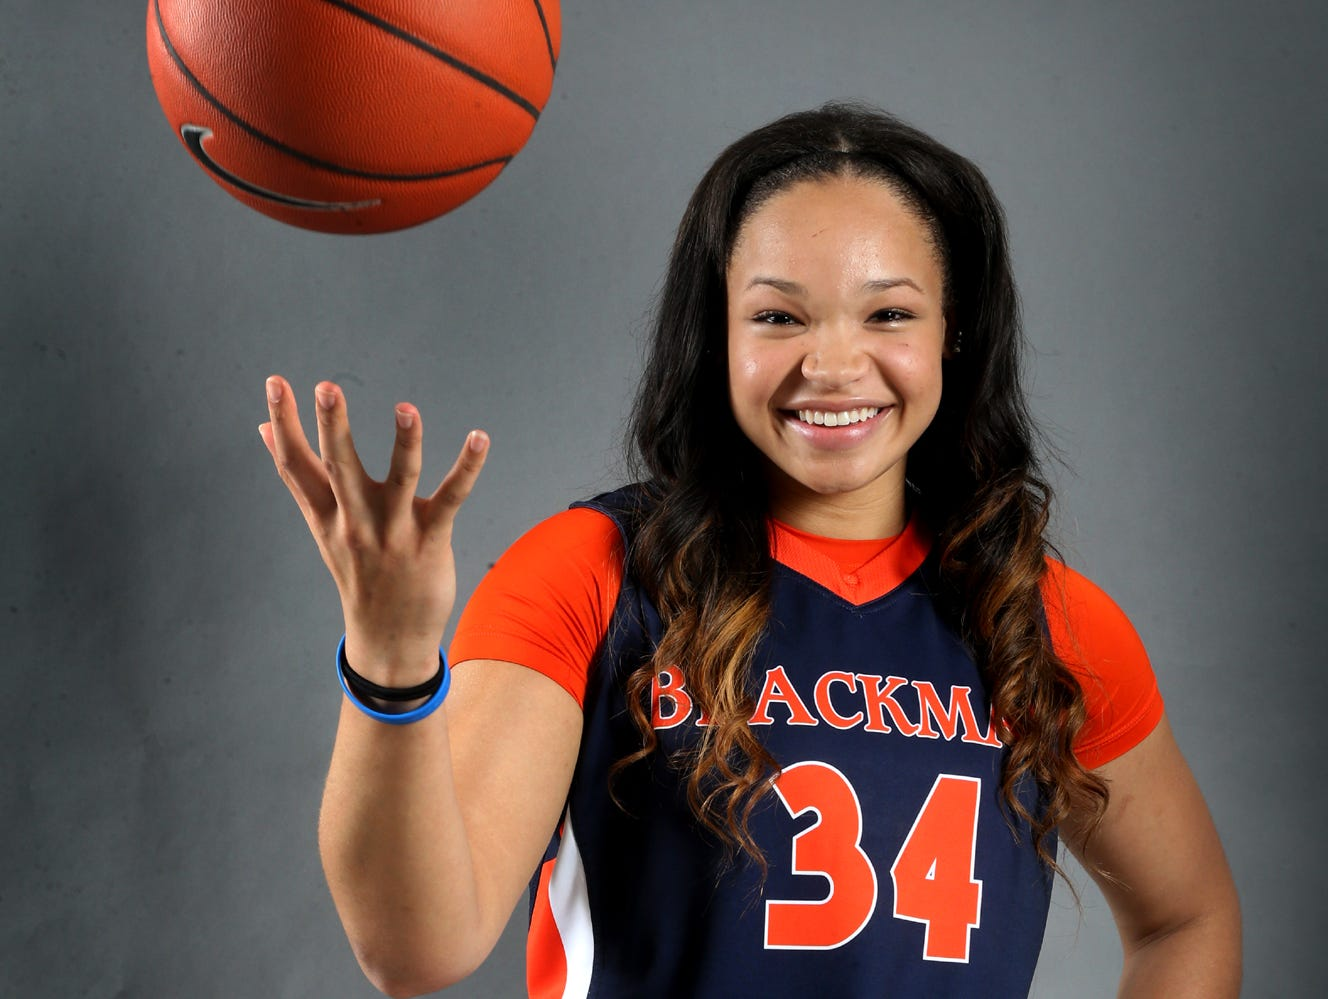 Alexis Johnson is one of the players on the all-area girls basketball team. Photo shot in the studio on April 9, 2015.